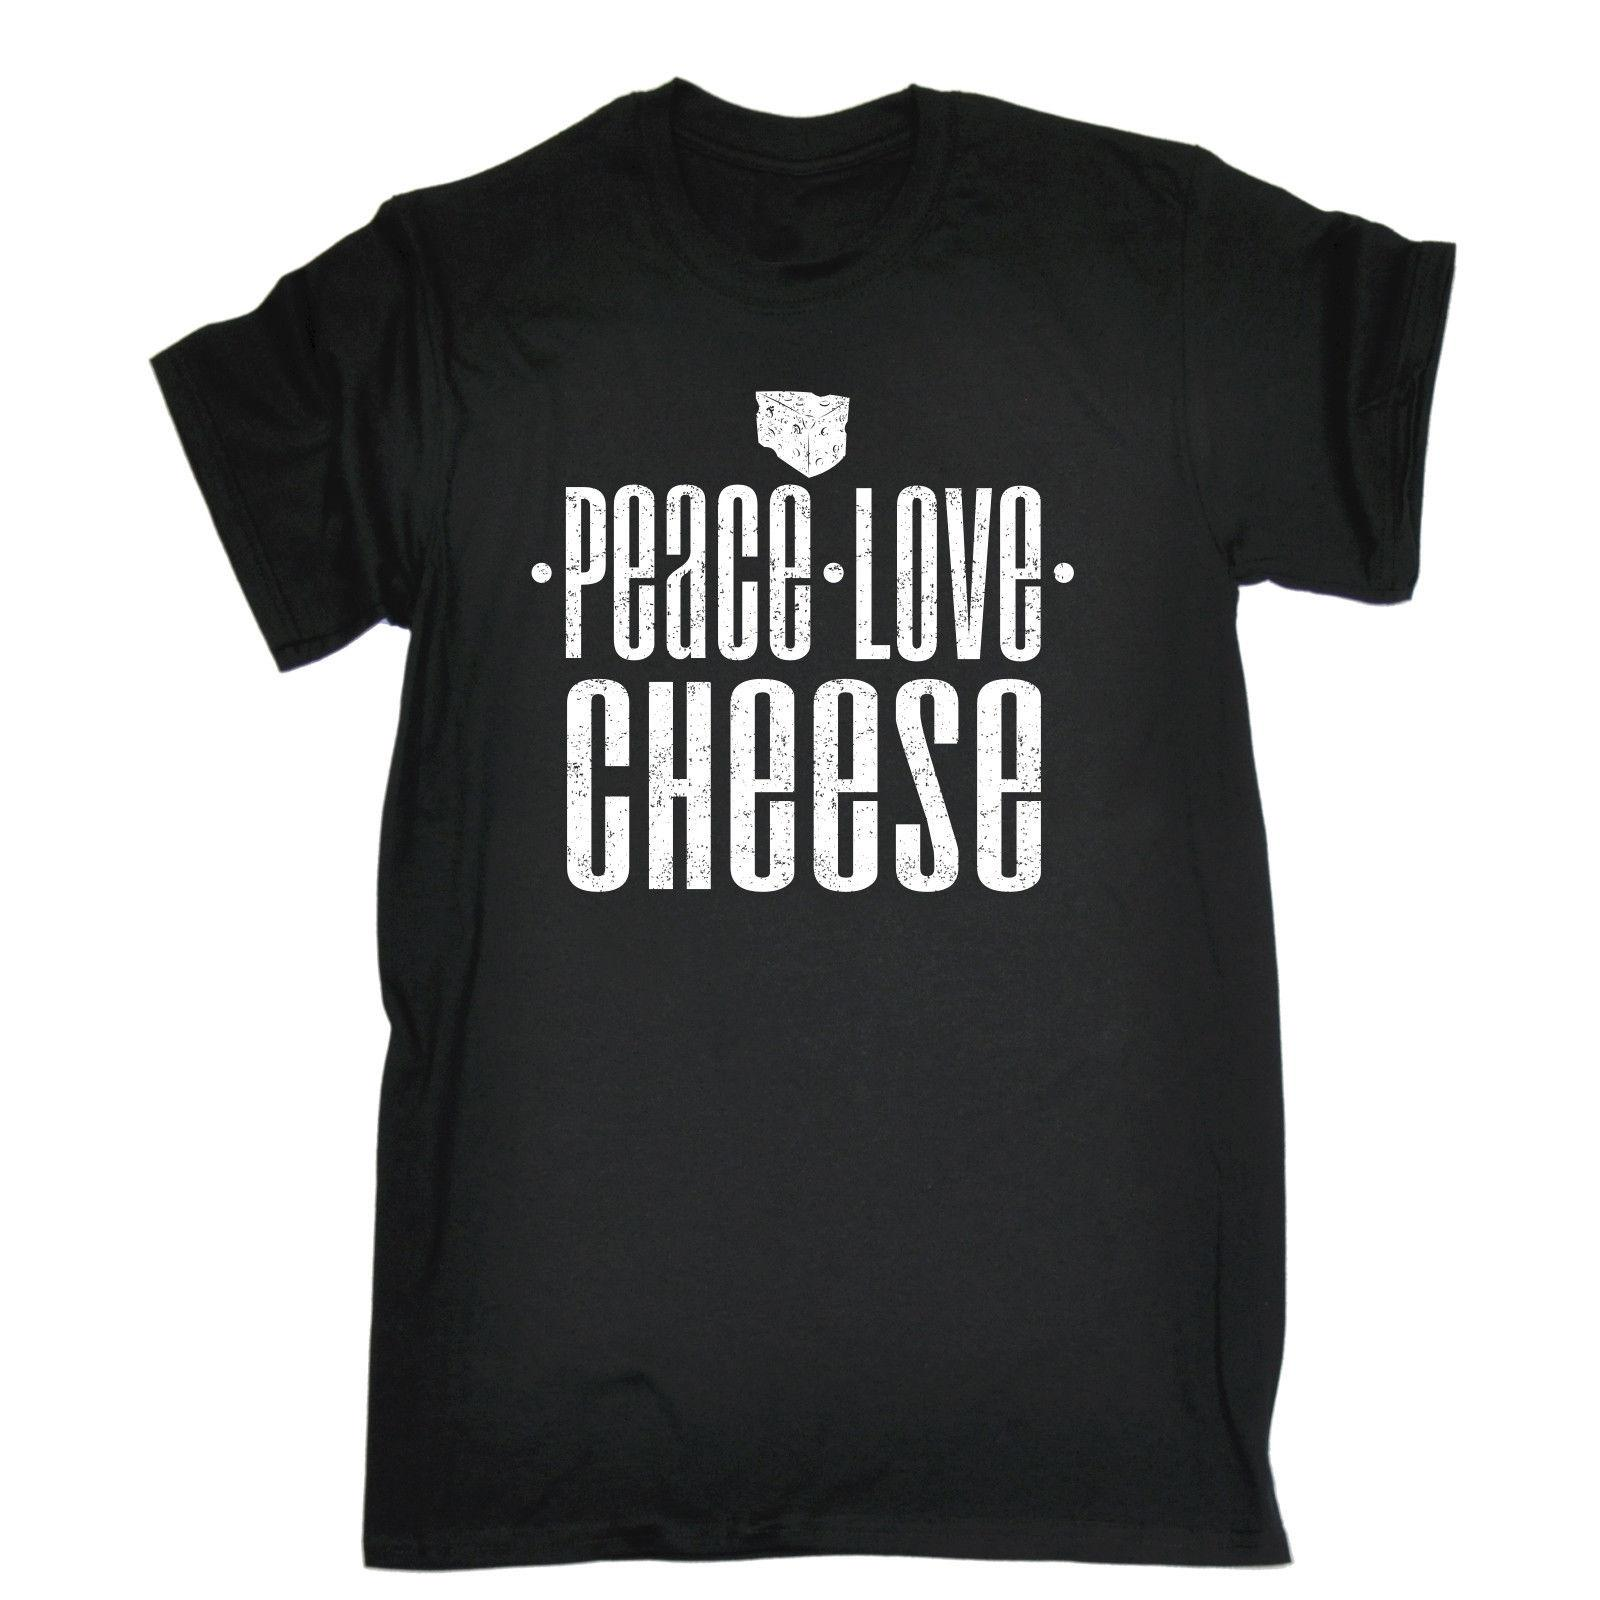 44a0f688c Peace Love Cheese T SHIRT Food Kitchen Cook Cooking Chef Funny Gift  Birthday Tee Shirts Printing Funny T Shirt Hipster Summer Top Tee Long  Sleeve Tee Shirts ...